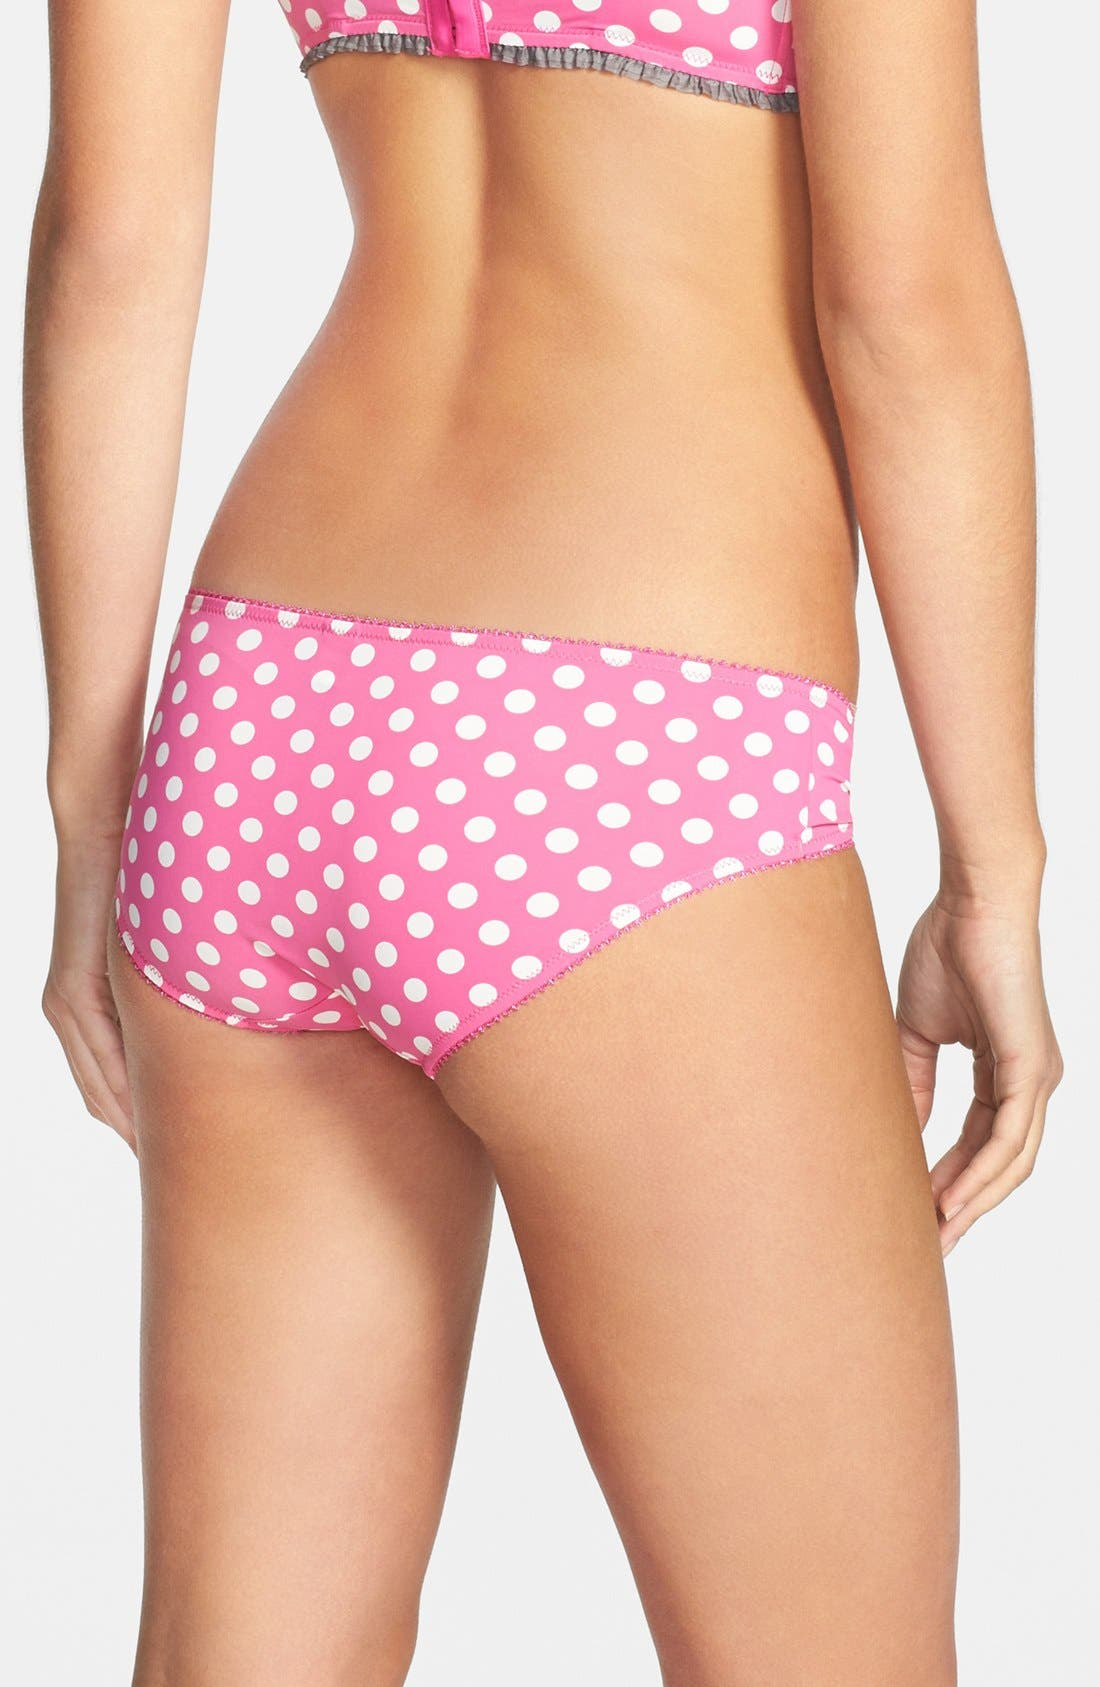 Alternate Image 2  - kensie 'Stella' Hipster Briefs (3 for $30)